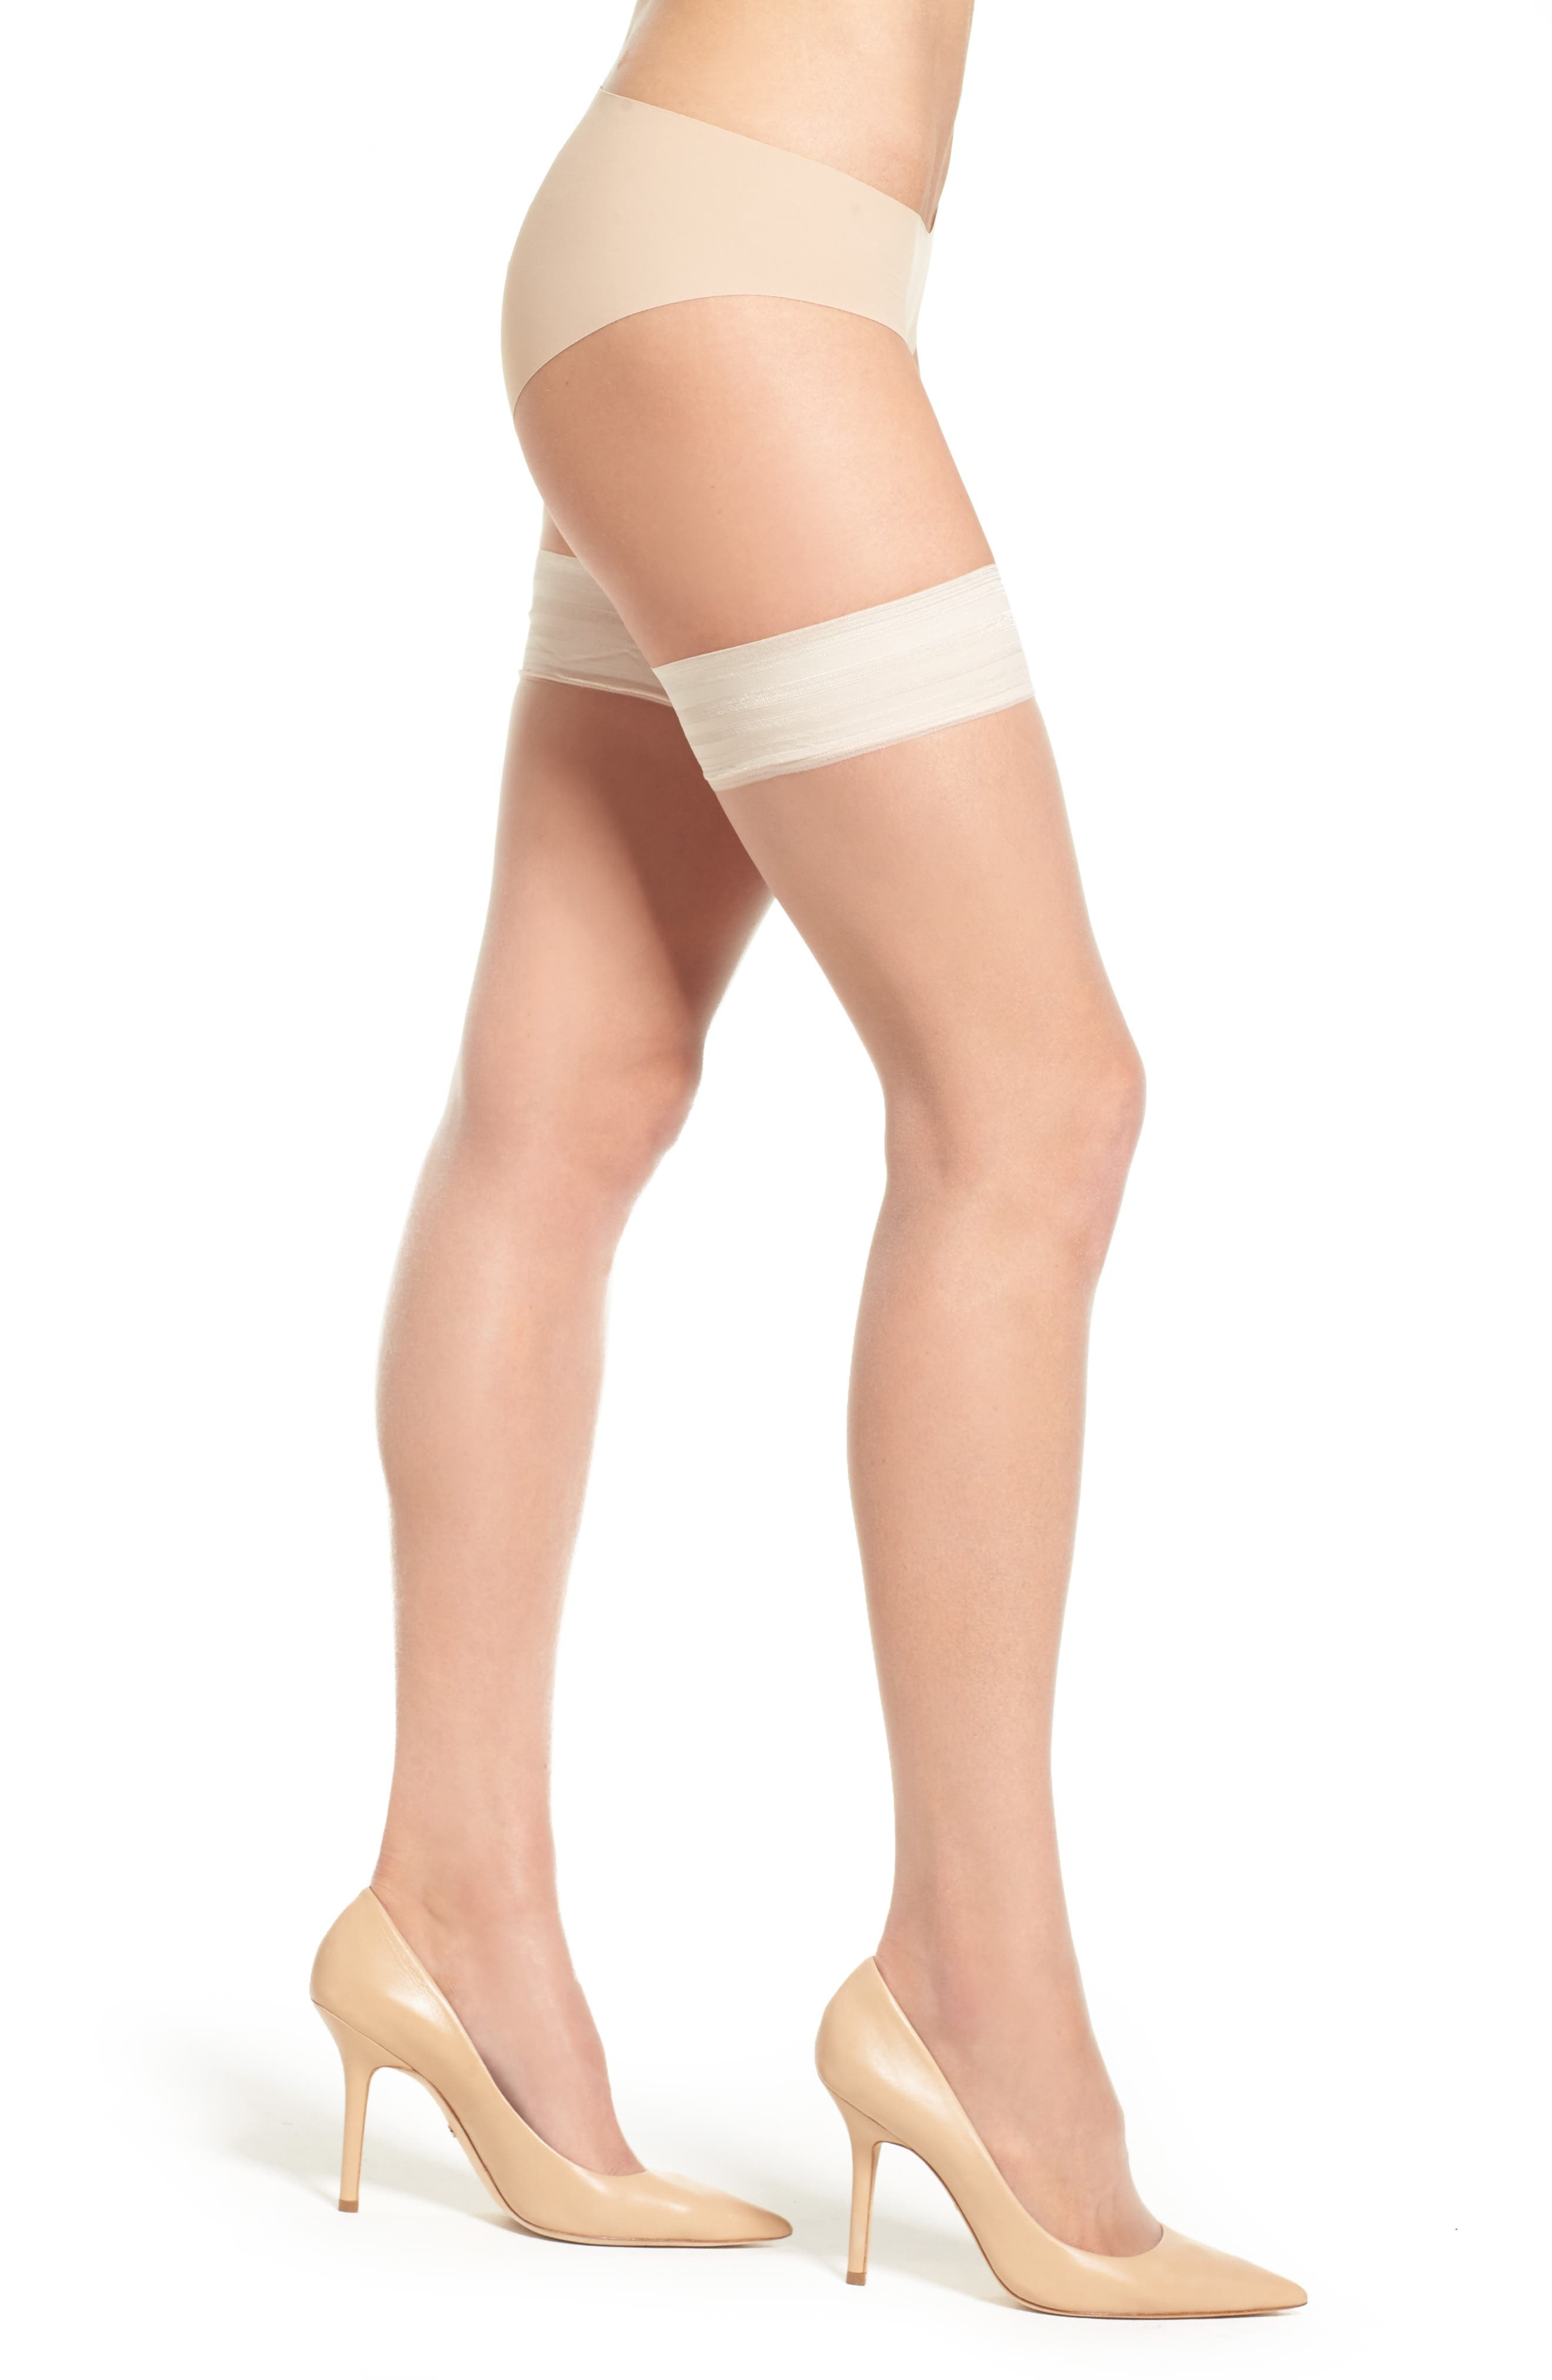 Donna Karan Beyond The Nudes Stay-Up Stockings,                             Main thumbnail 1, color,                             A01